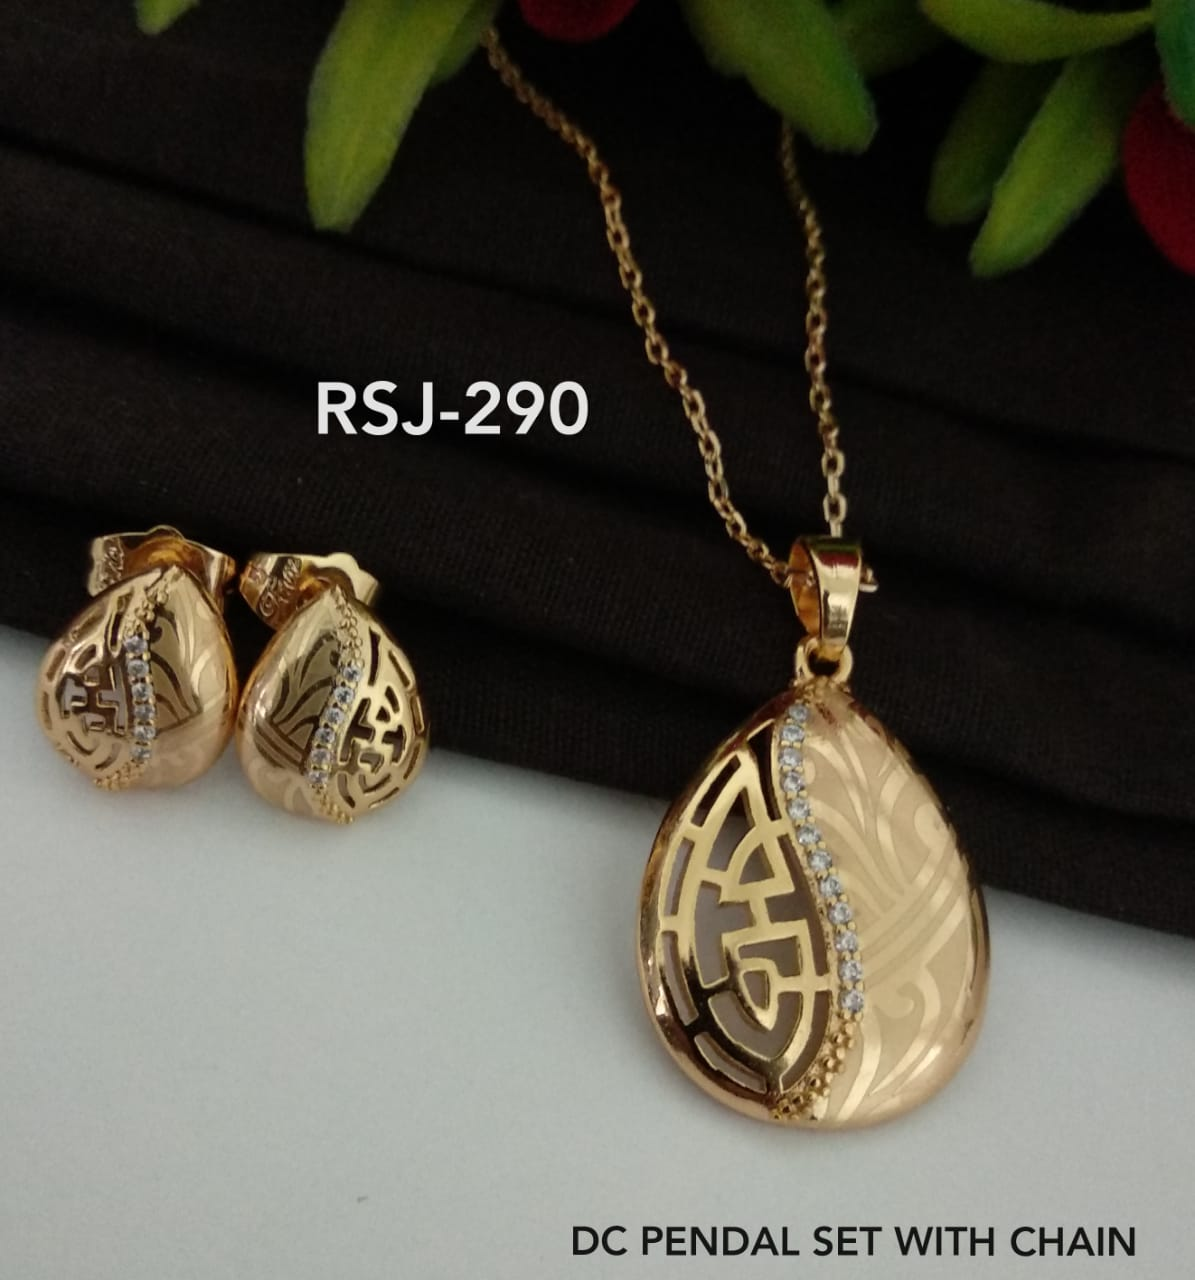 DC Pendal Set With Chain And Earrings